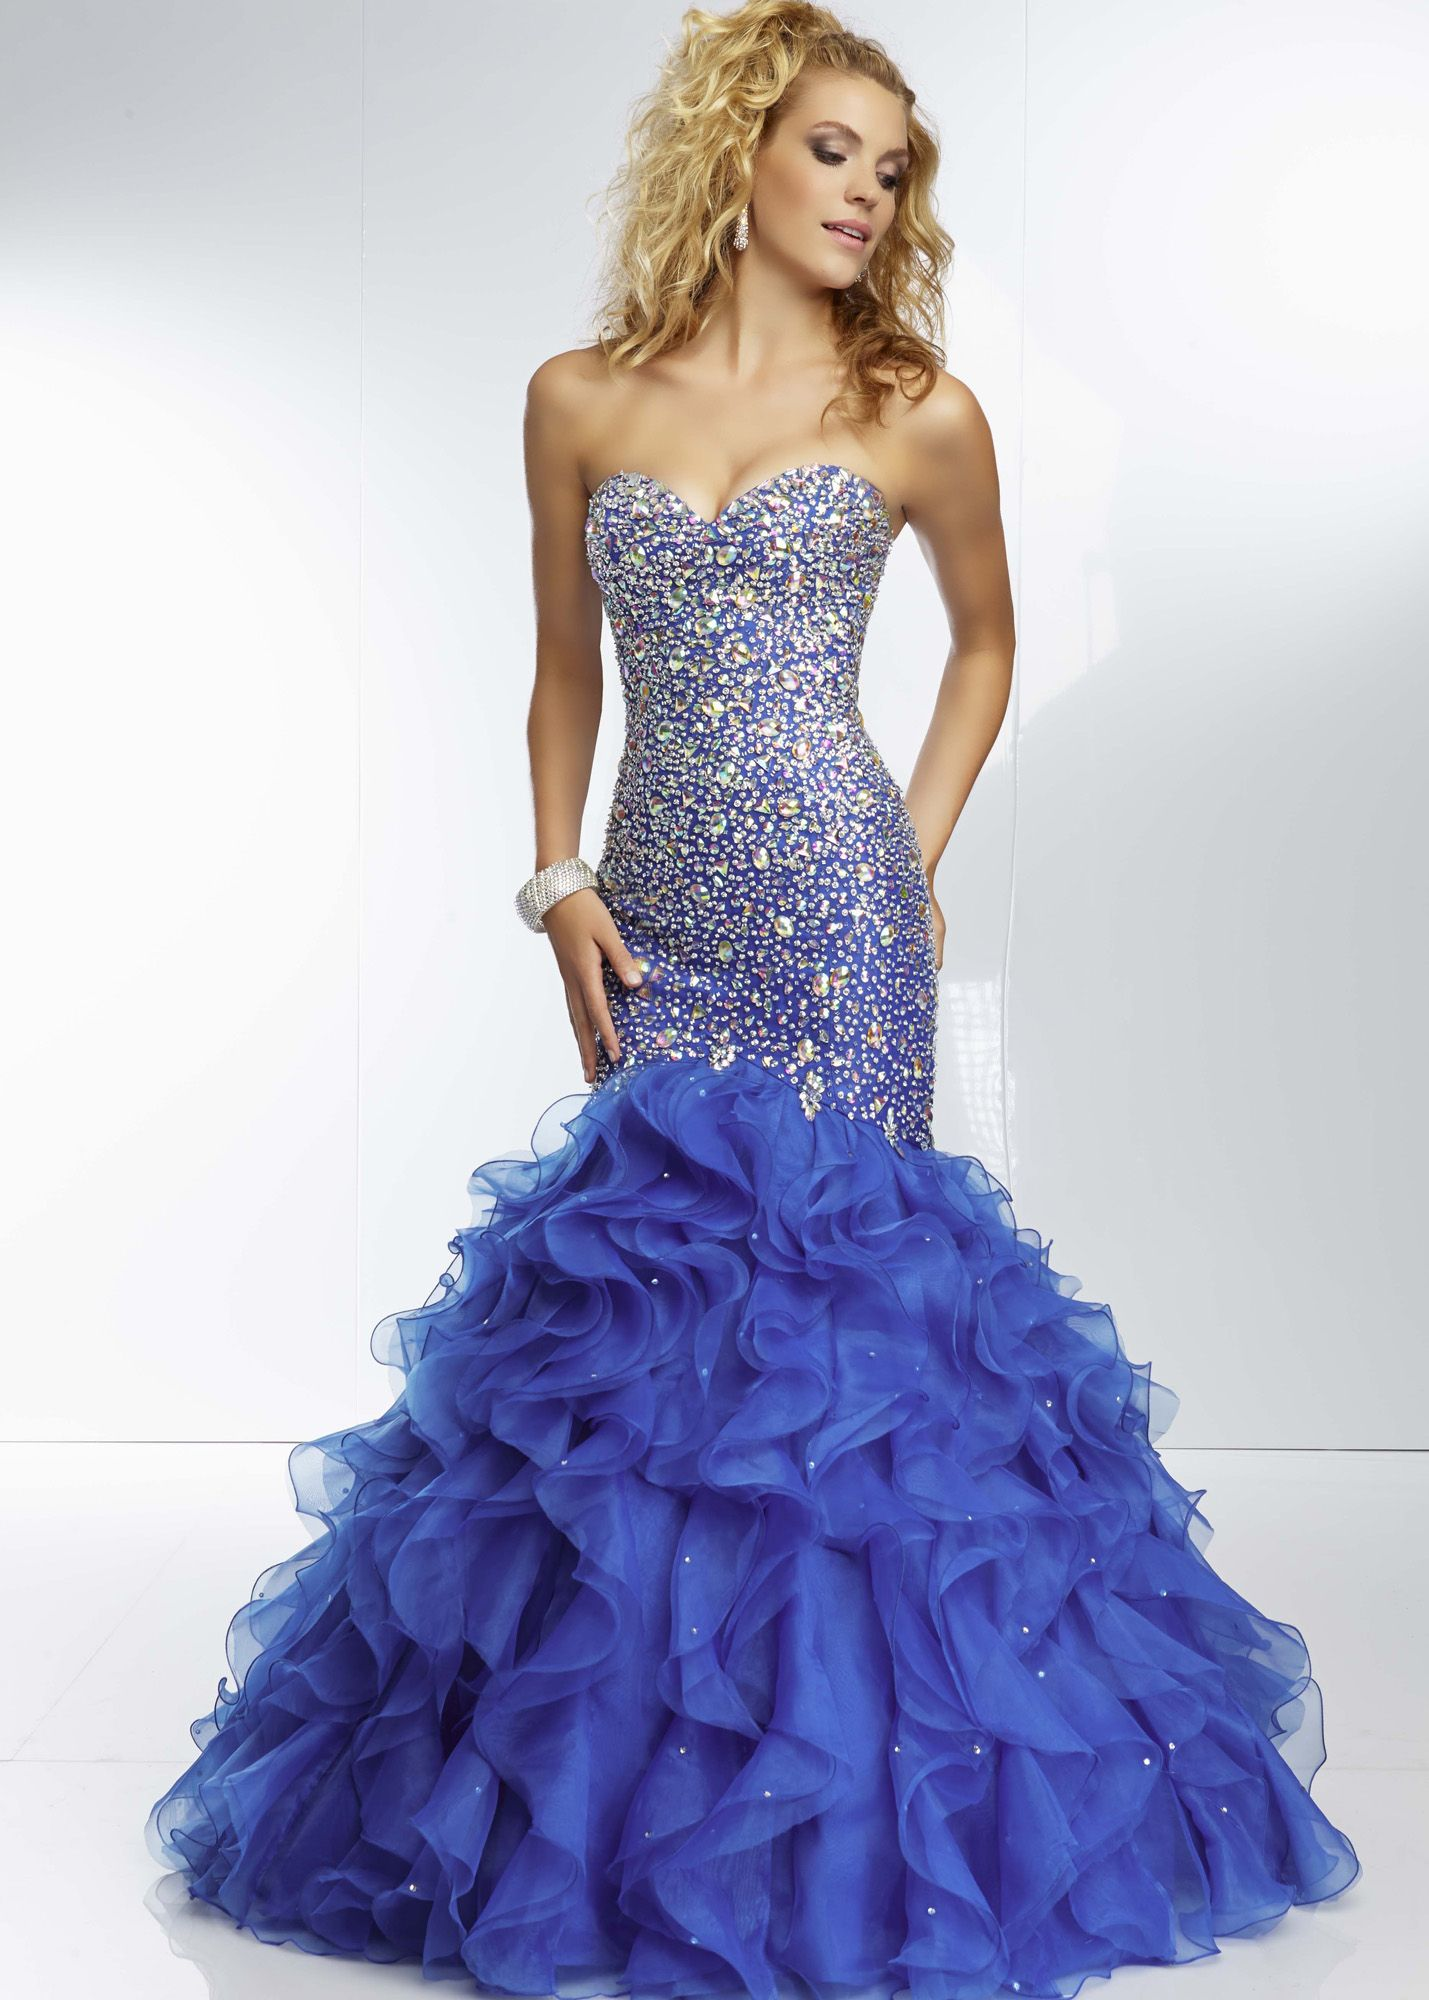 Blue mermaid pageant dresses home long prom dresses royal